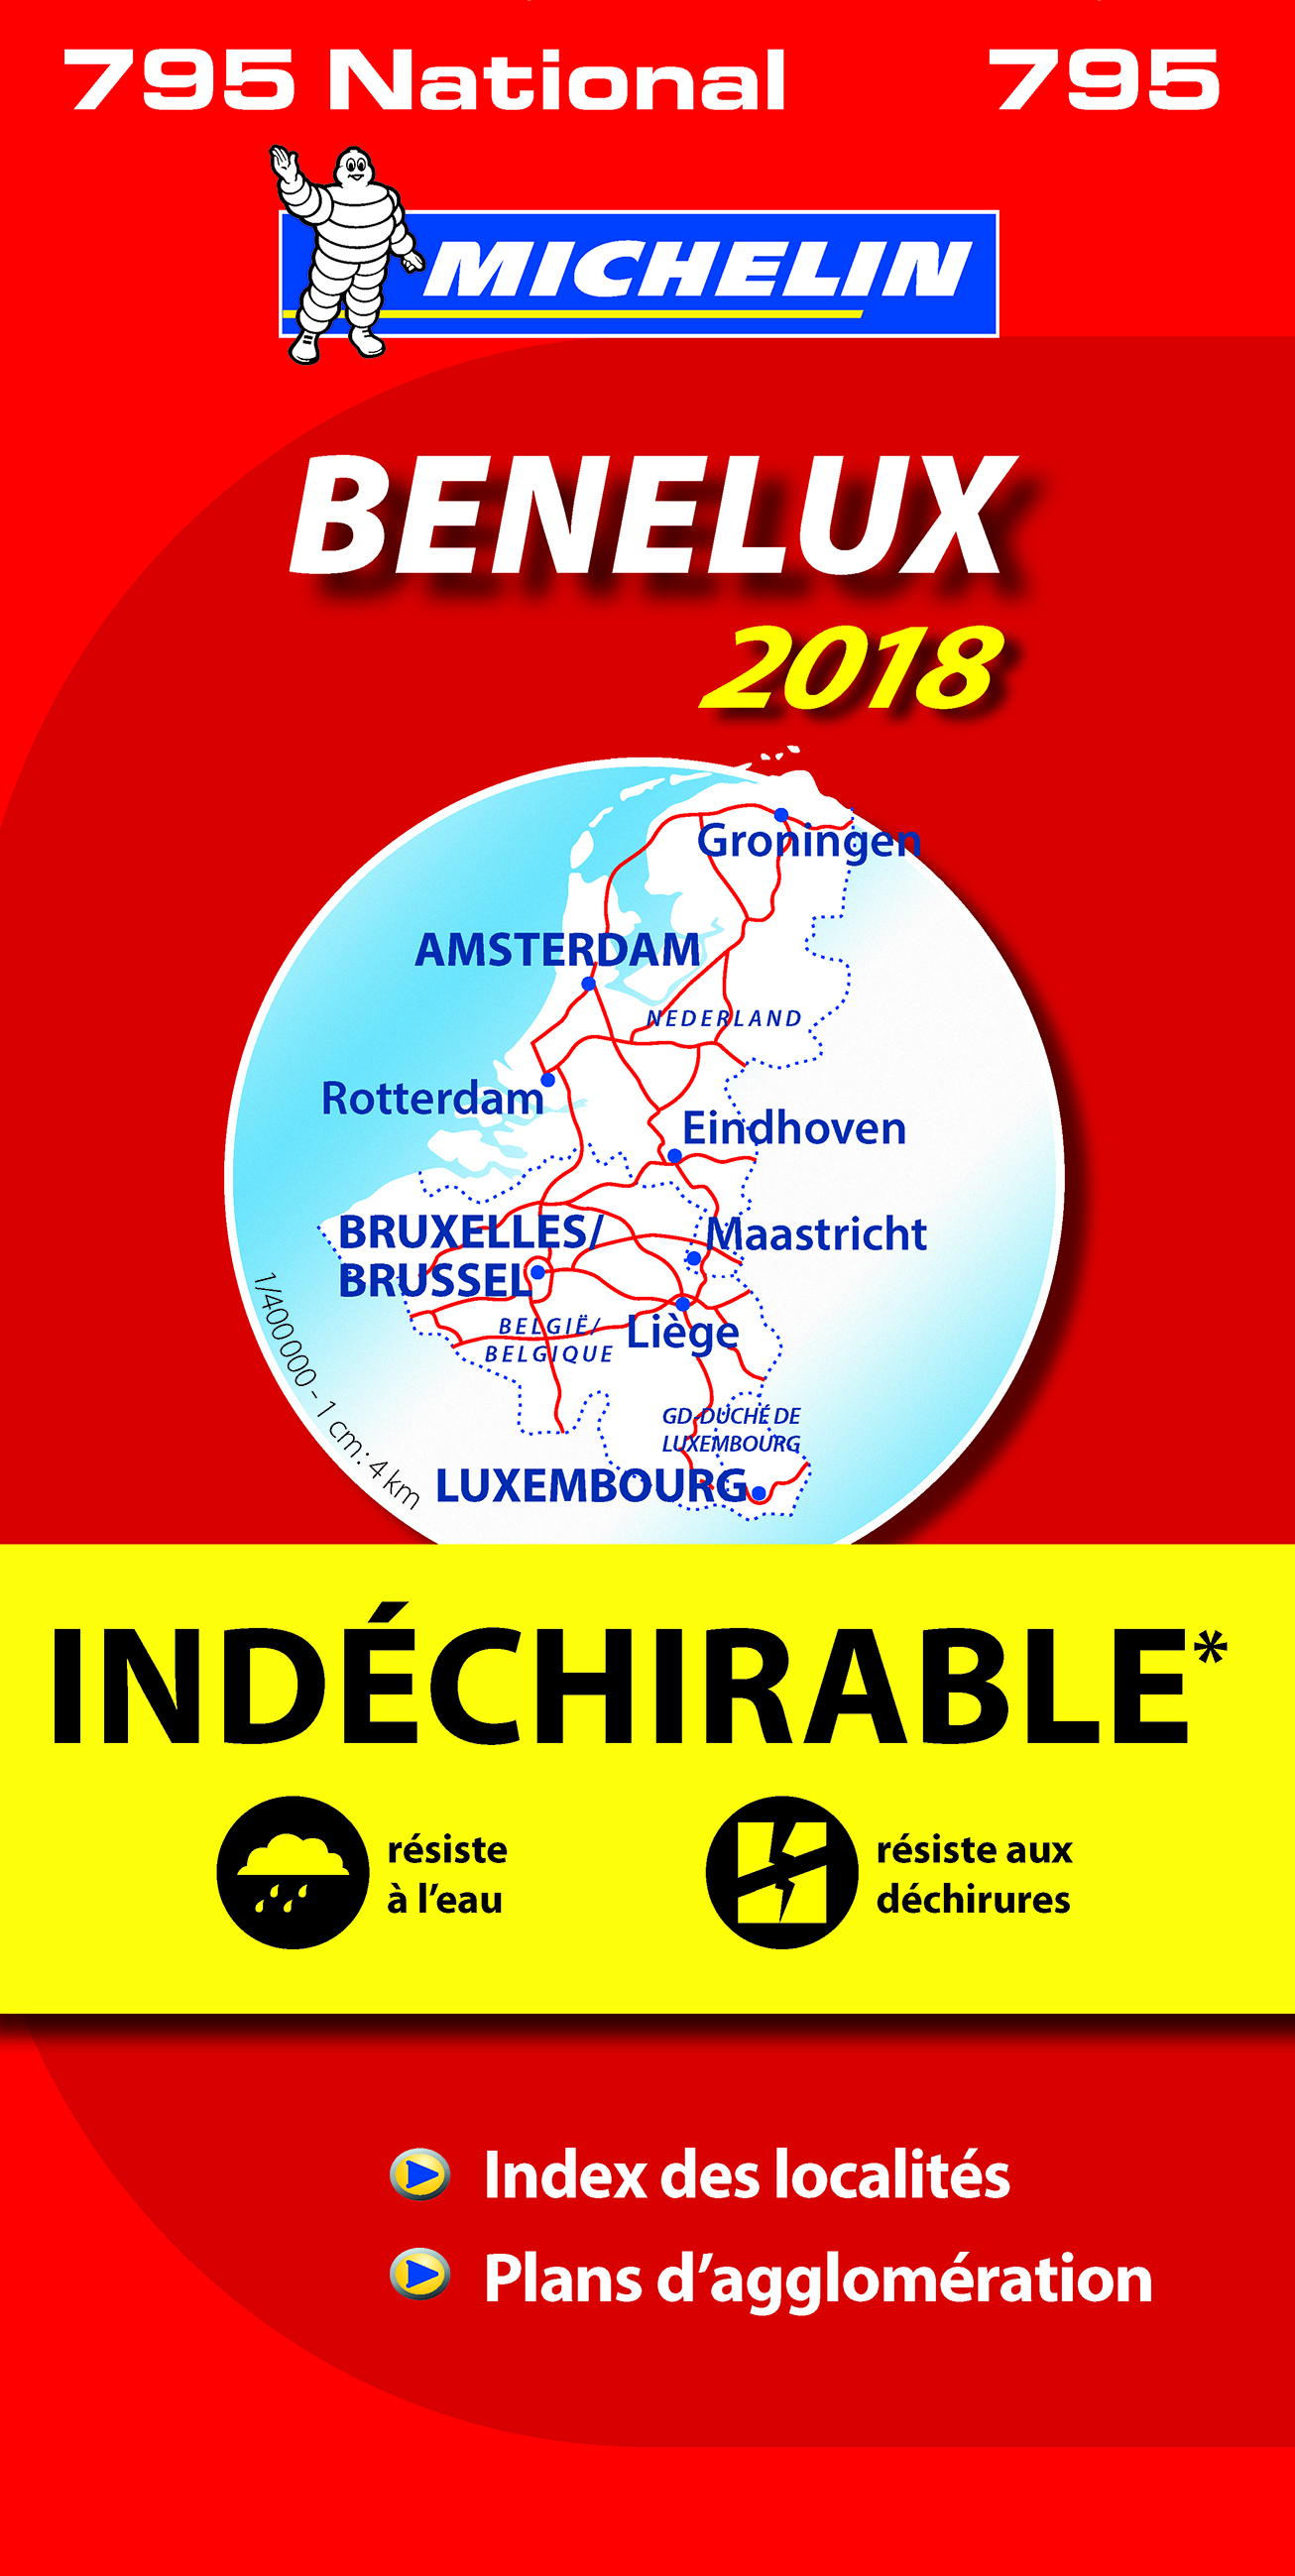 CARTE NATIONALE 795 BENELUX INDECHIRABLE 2018